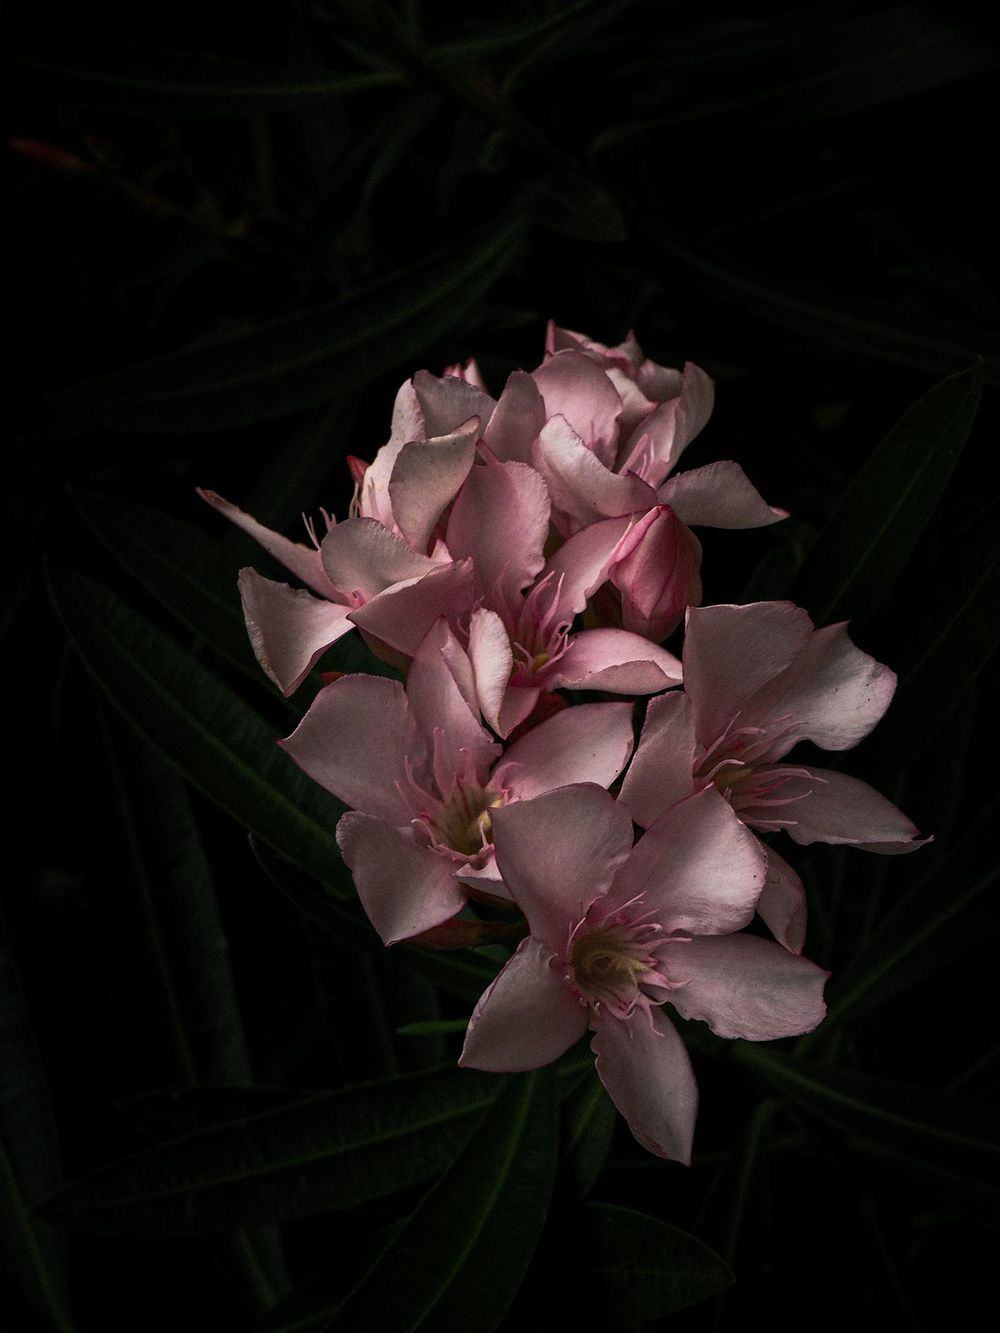 moody flowers - image 6 - student project